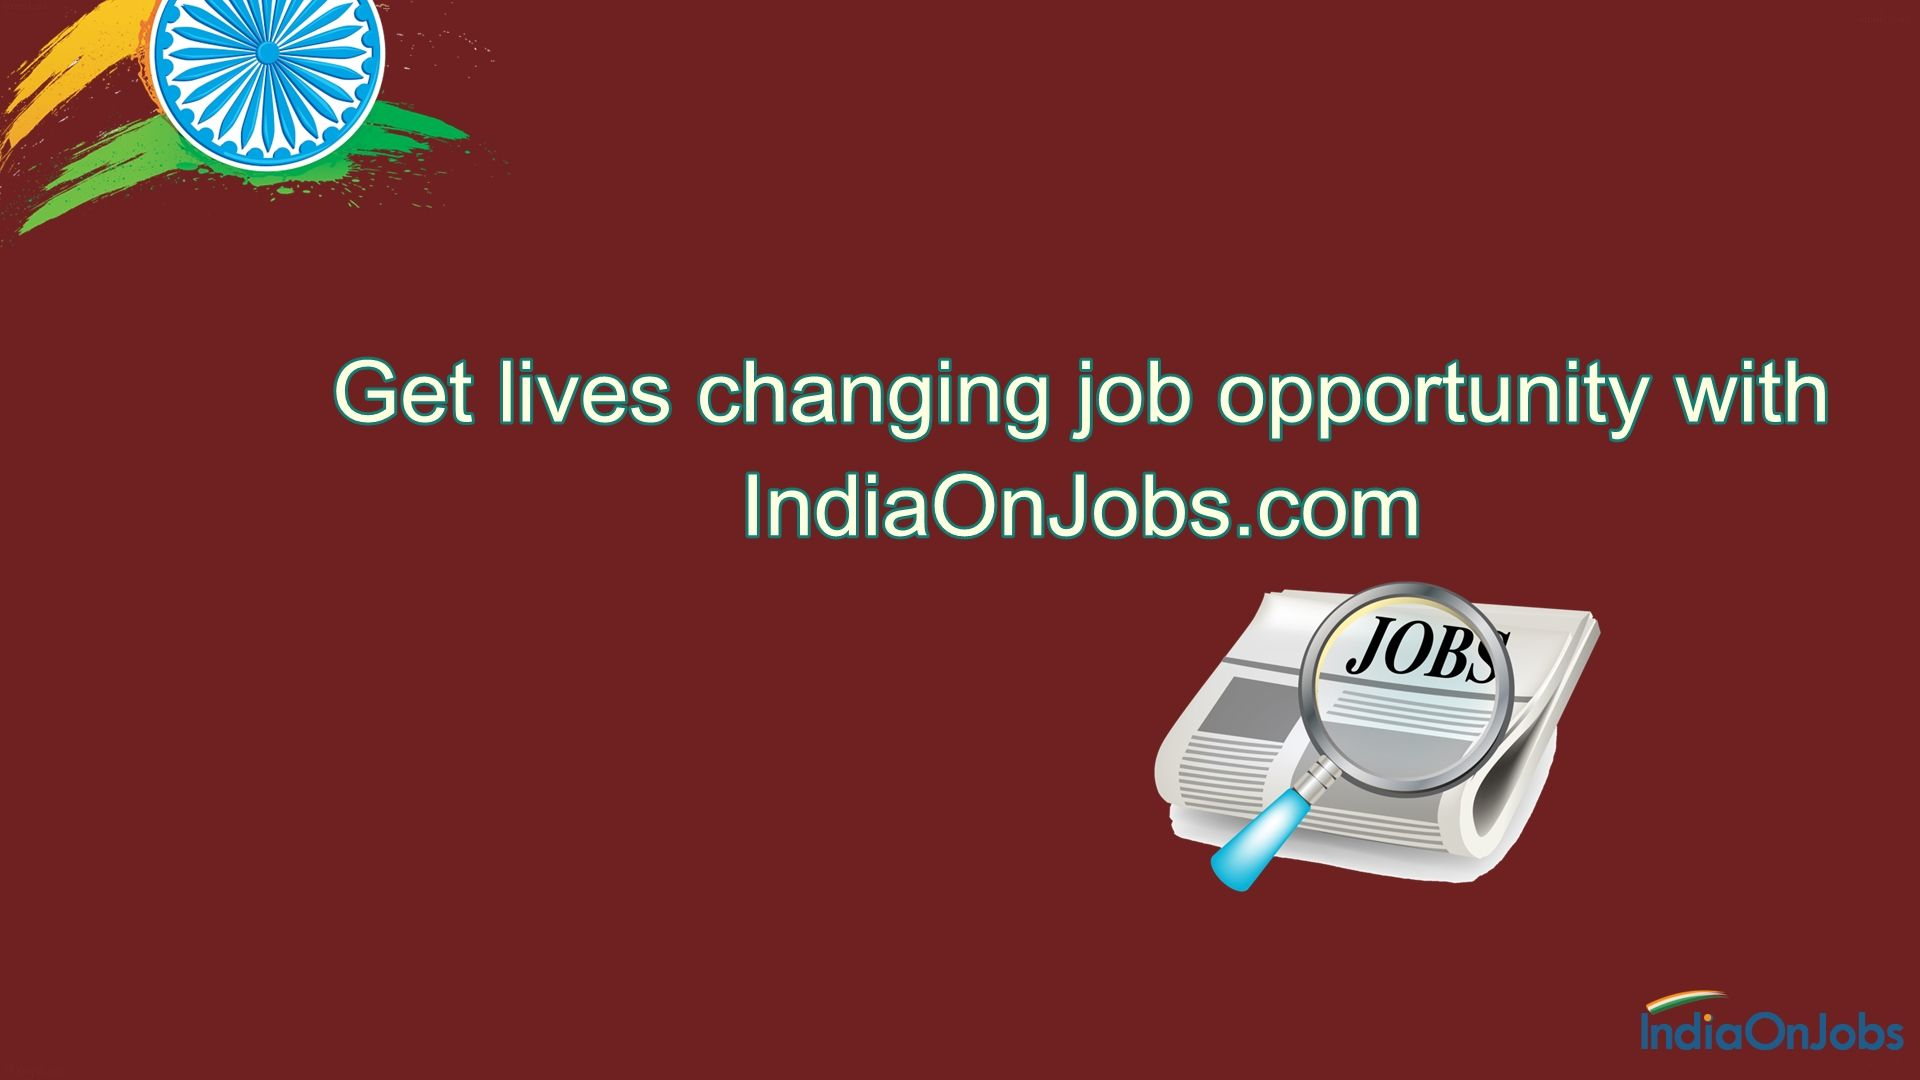 Latest Jobs in Sales, Medical, Health services, Web